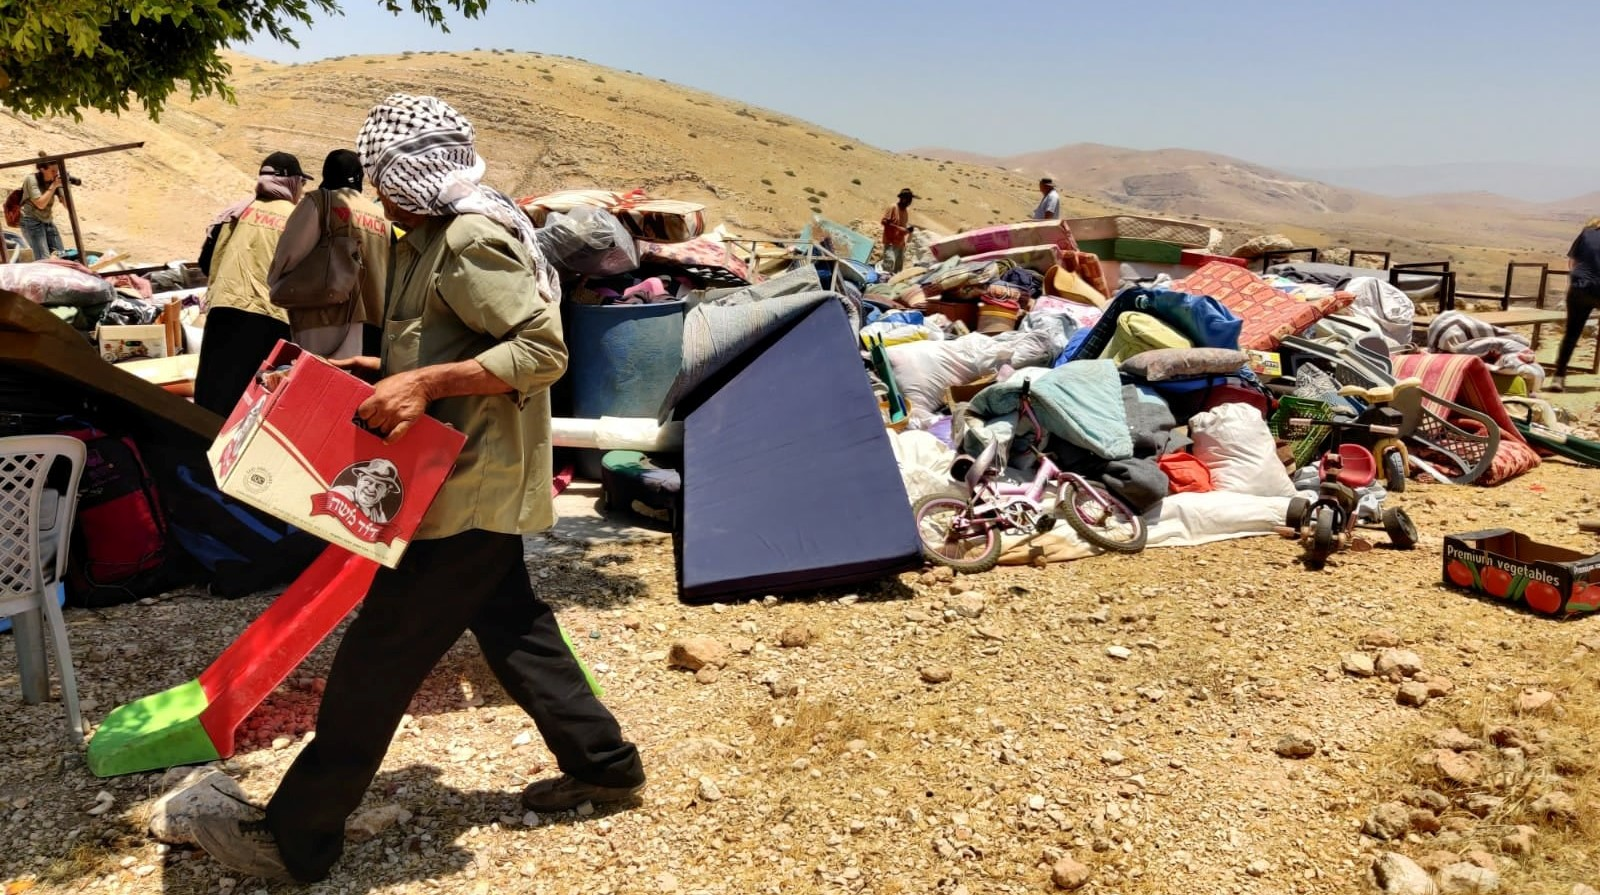 Remains of Khirbet Humsa in the occupied northern Jordan Valley following Israel's demolition of the hamlet on July 8, 2021